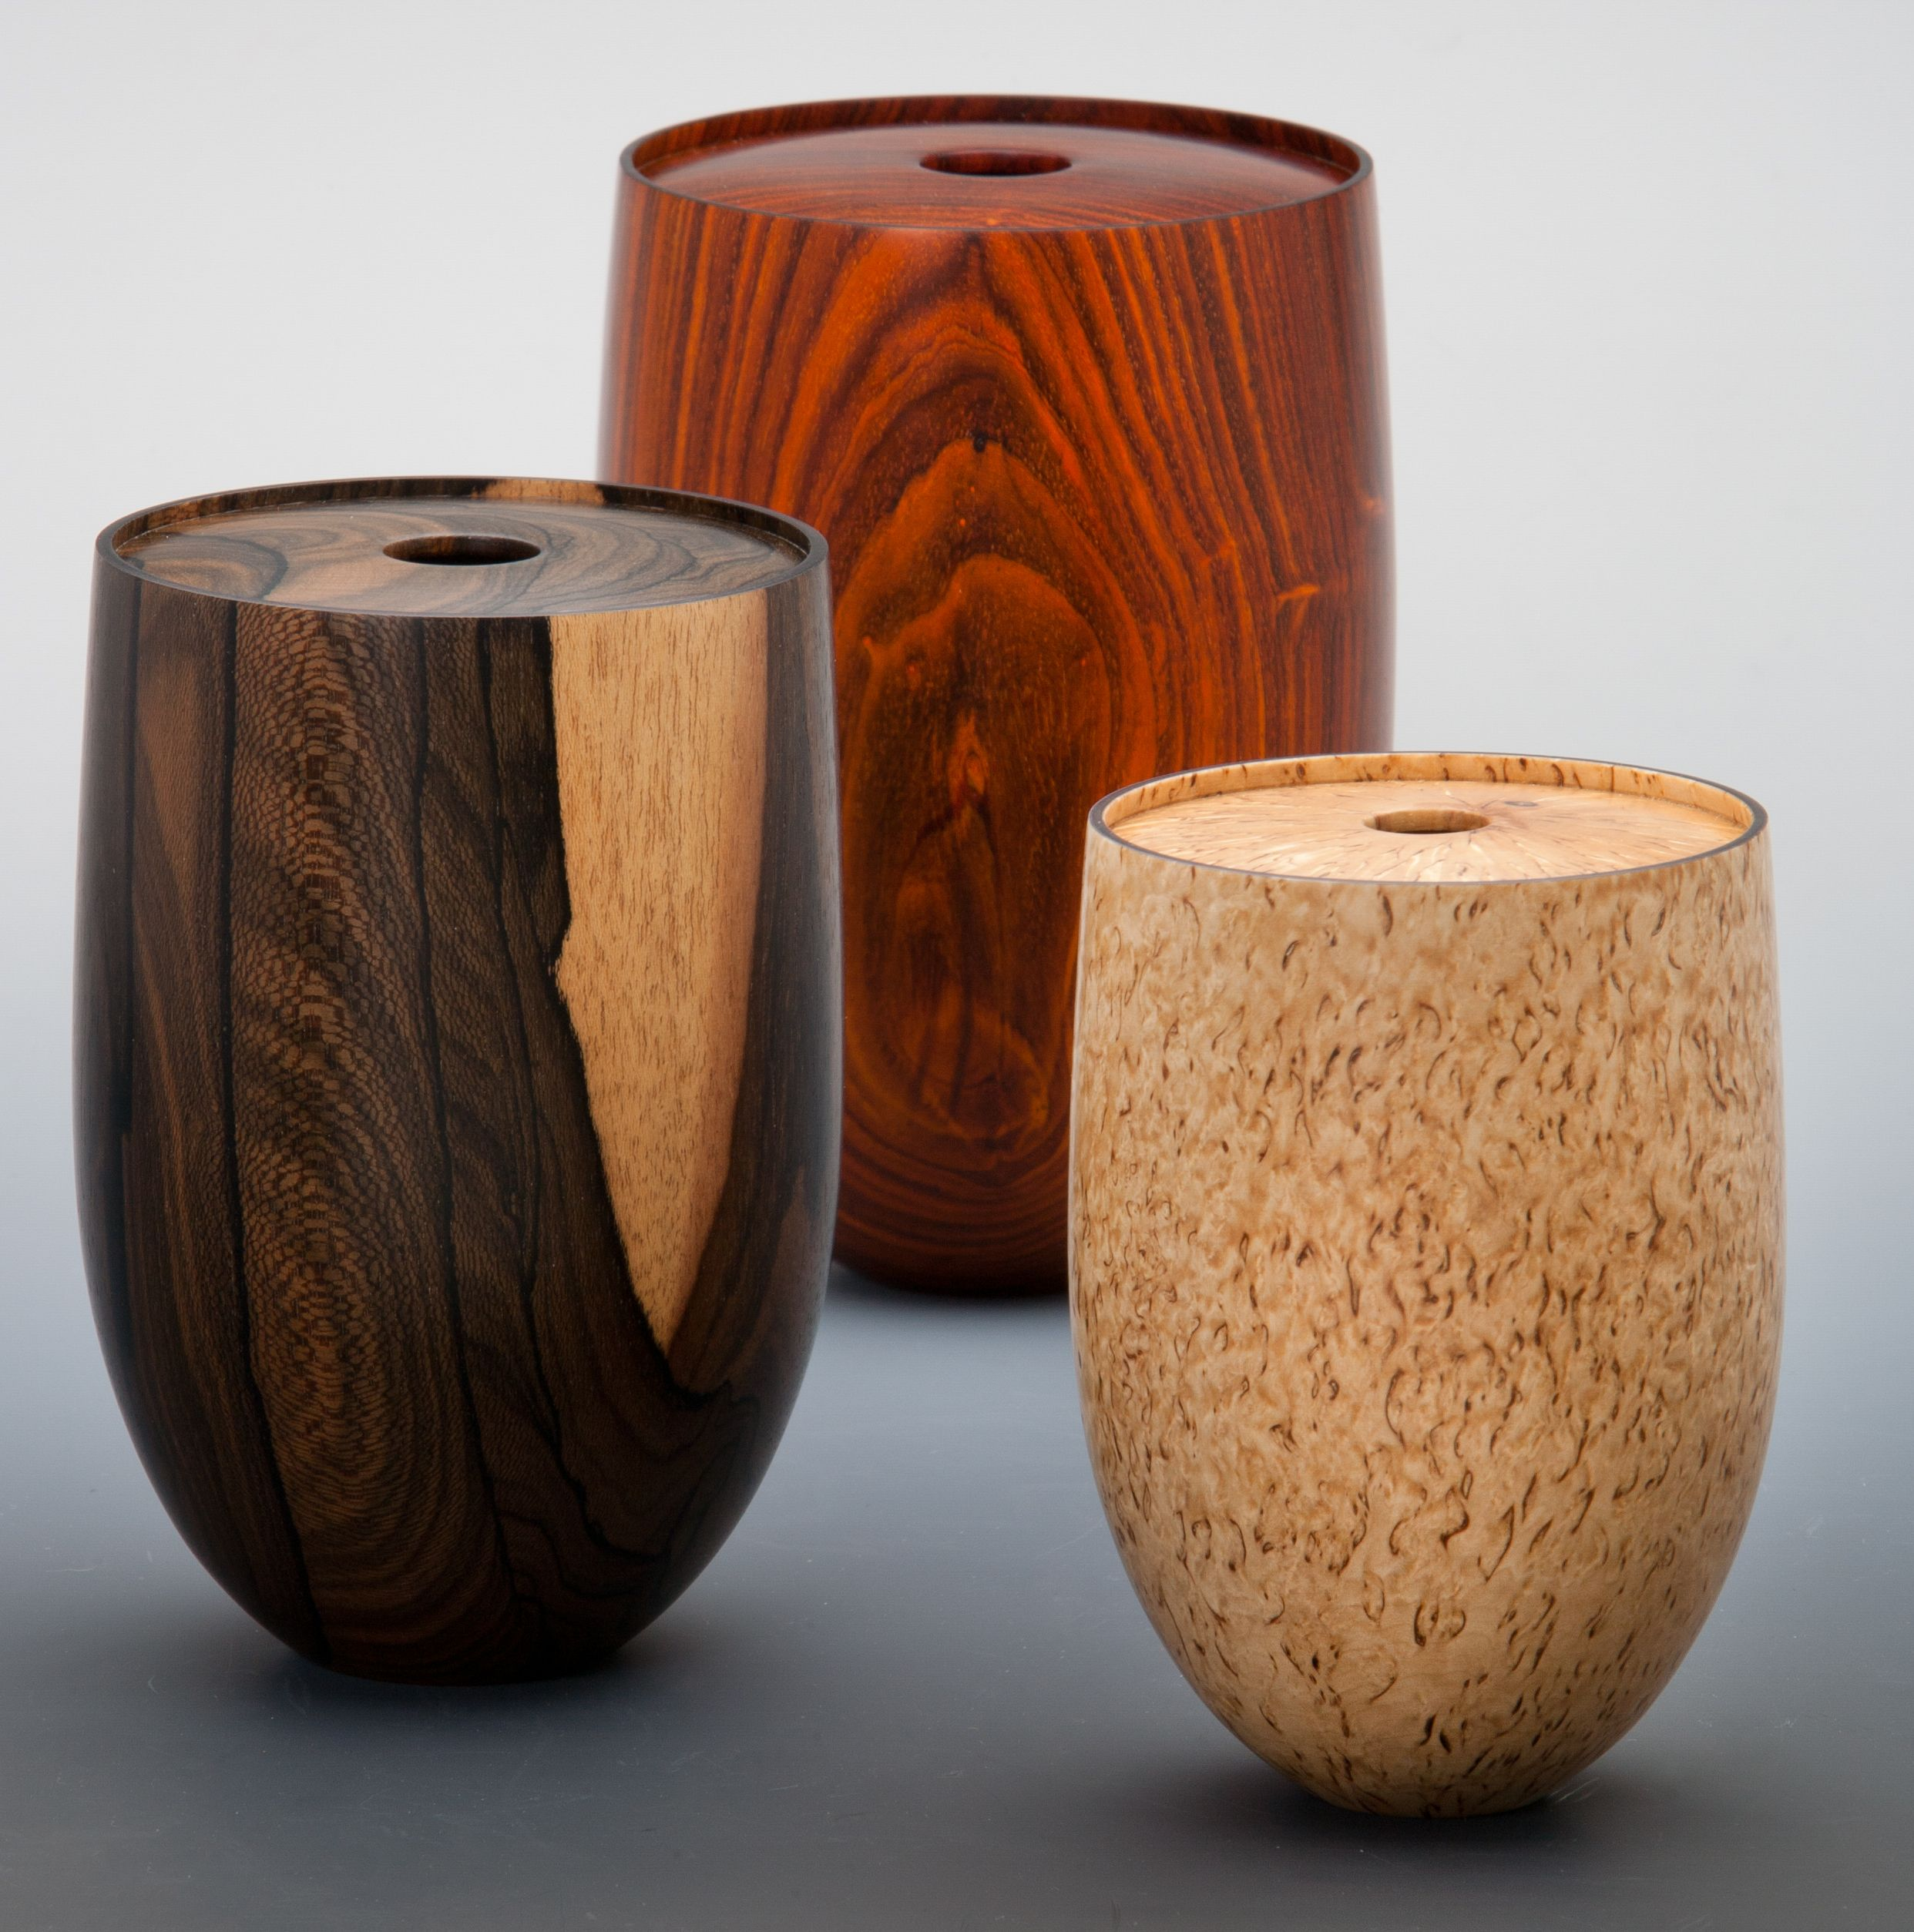 Ray Key S Hollow Vessels Are Perfectly Scaled To One Another